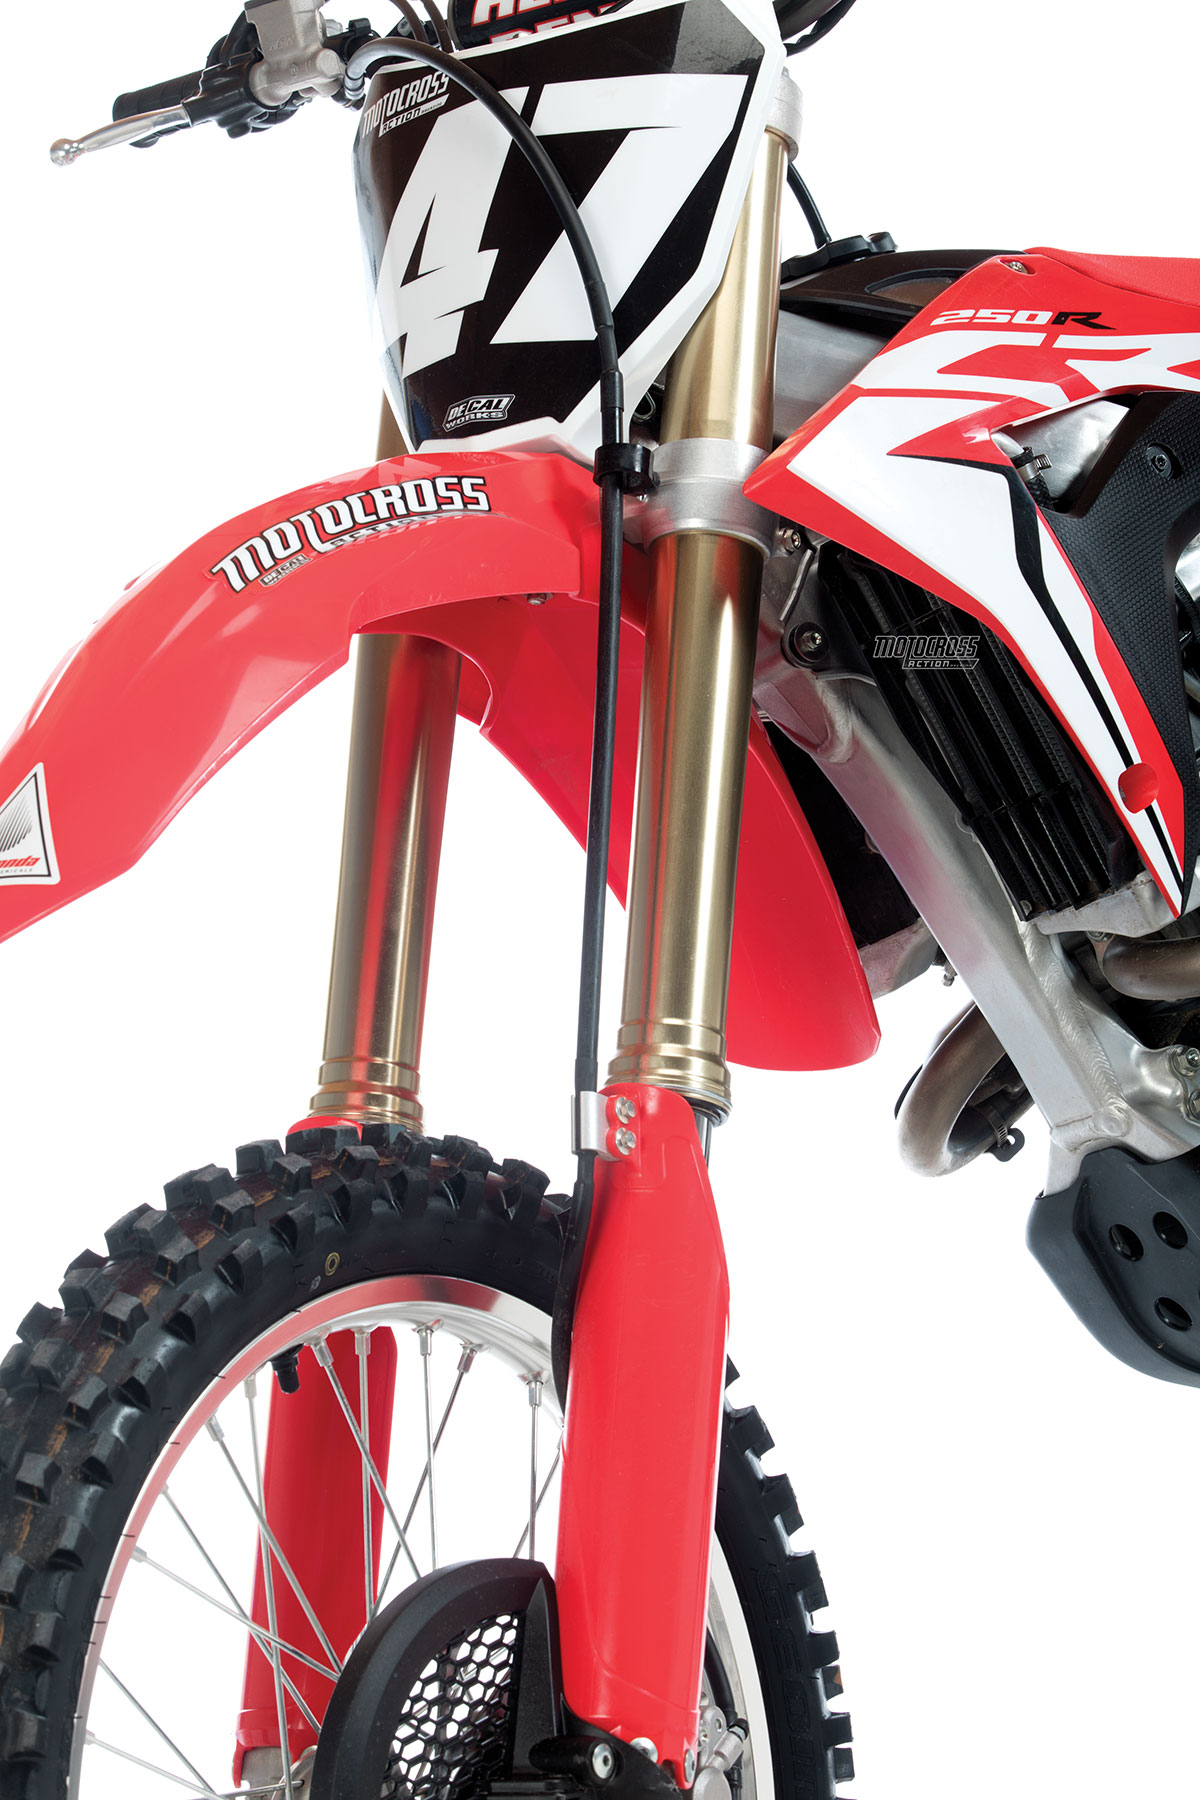 hight resolution of the handling and feel of the crf250 are its saving graces the showa a kit spring forks work superbly under the new chassis it makes riding easier